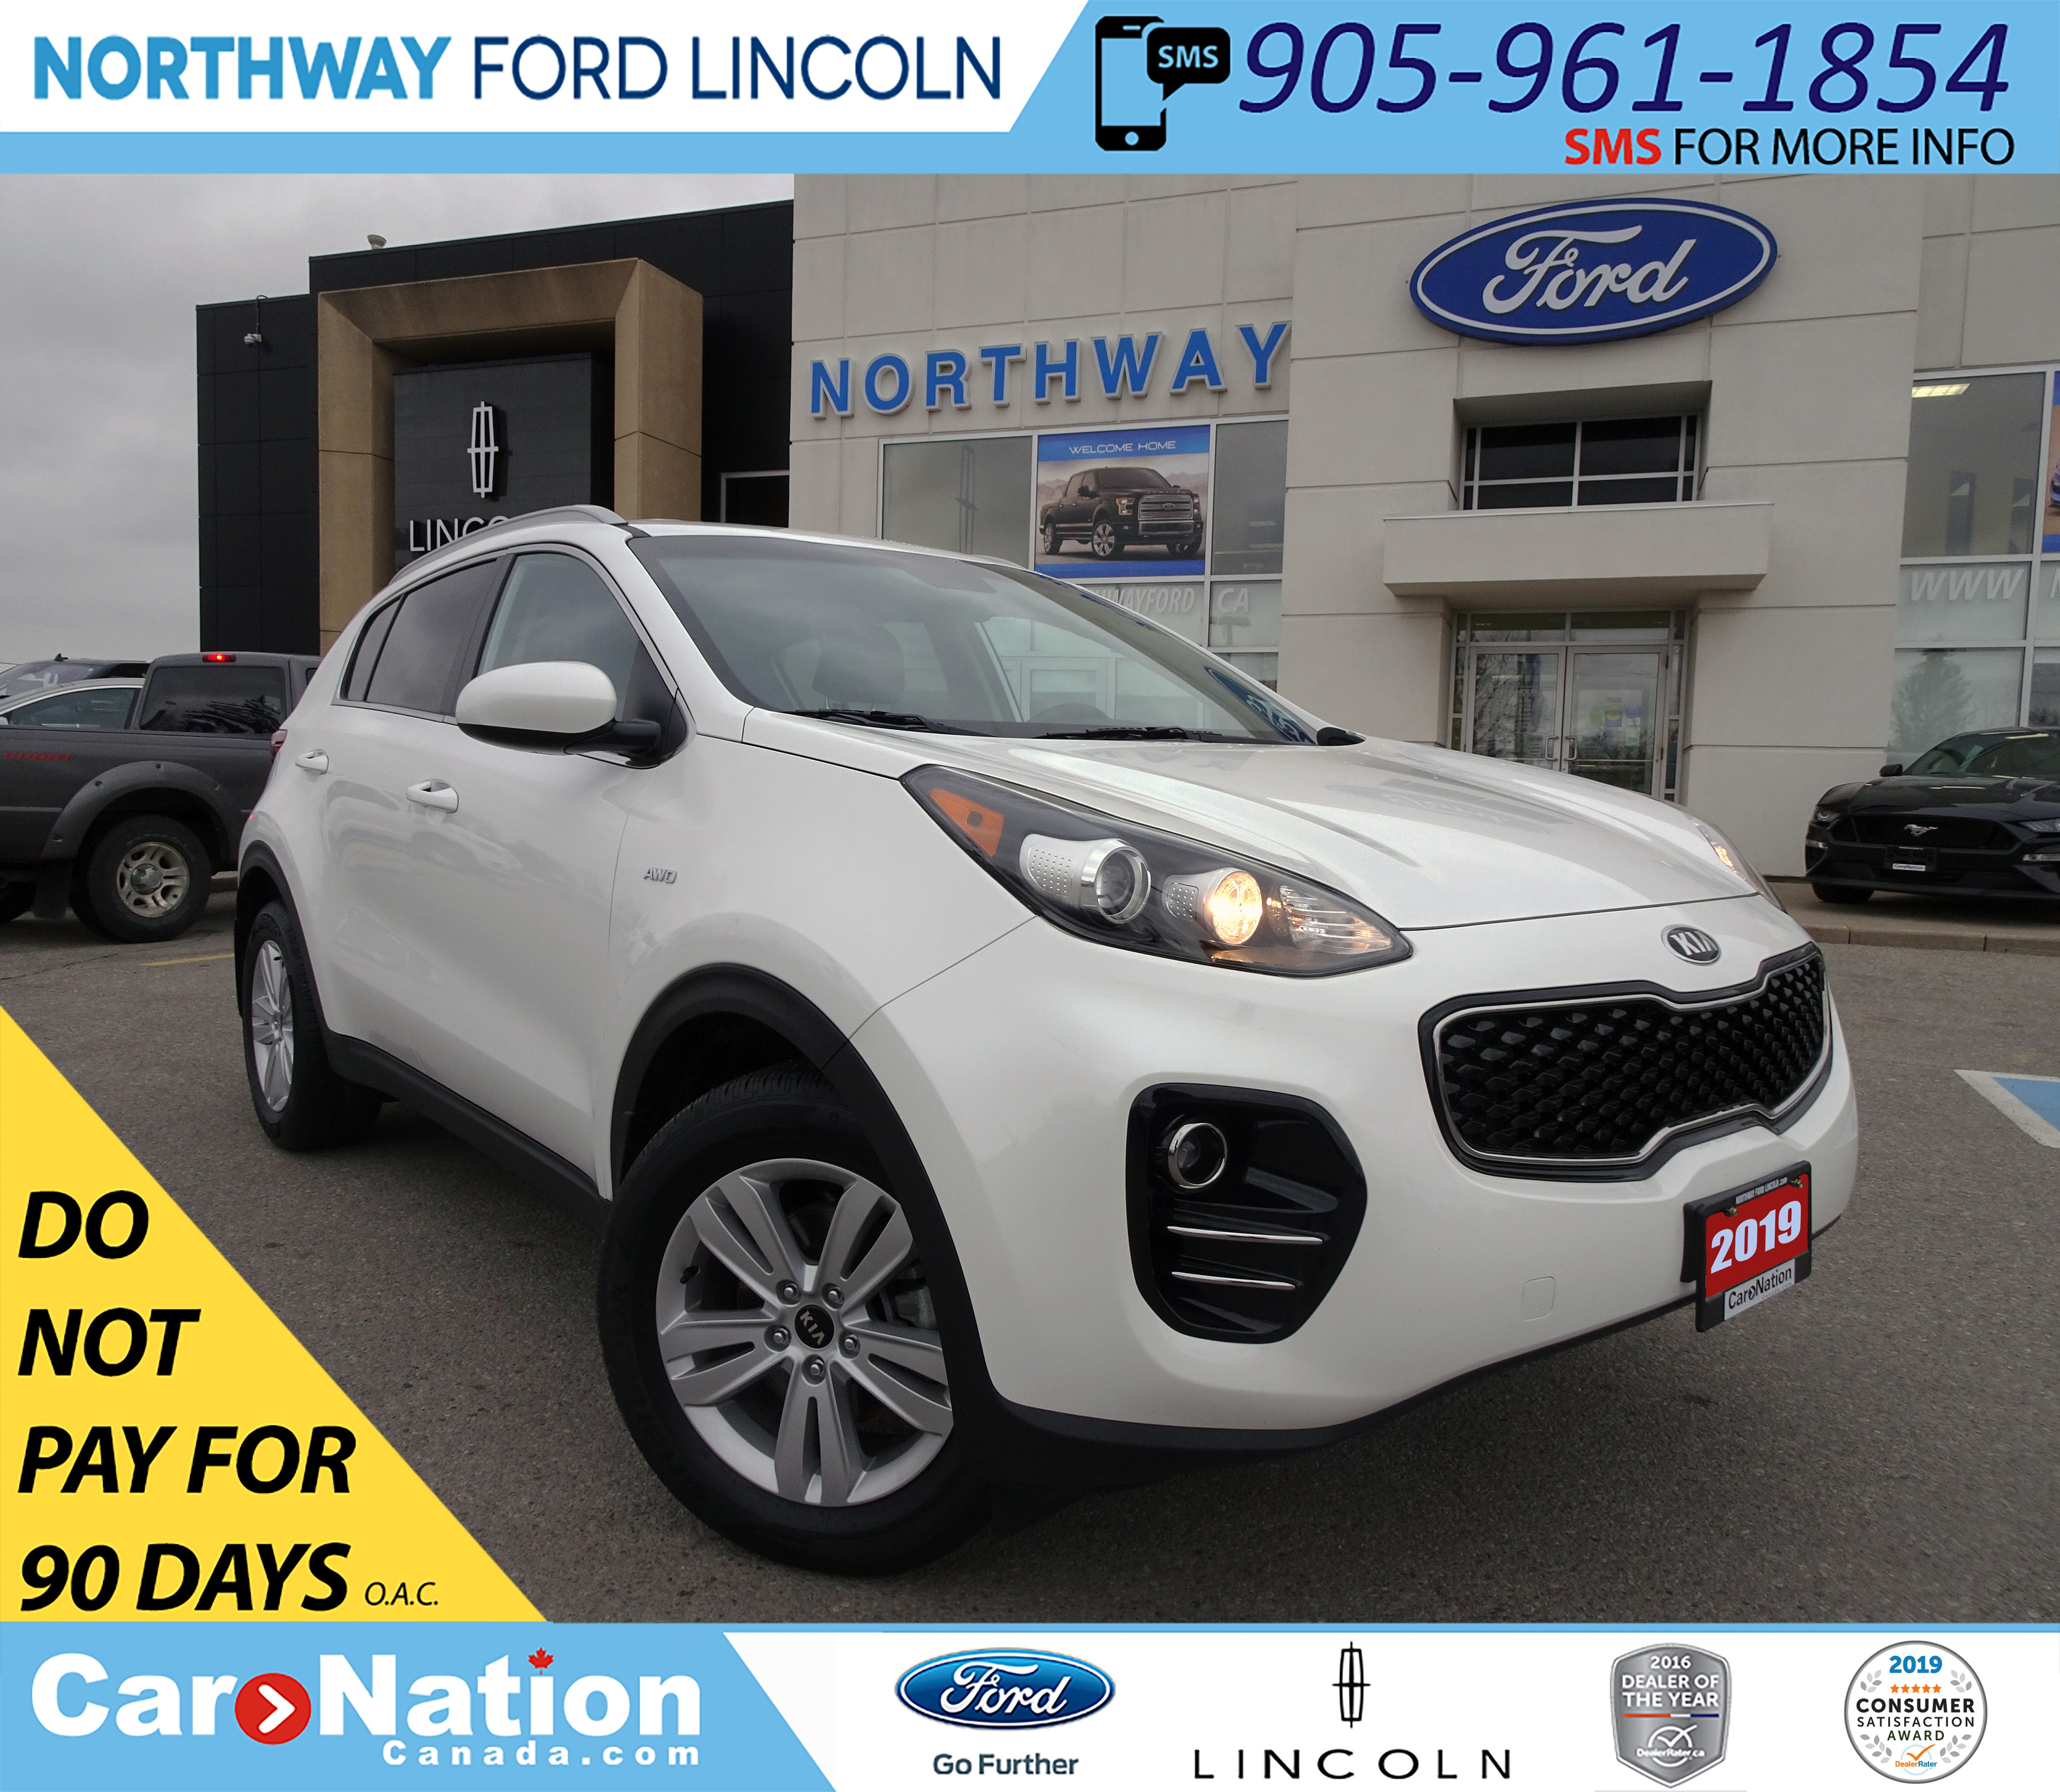 2019 Kia Sportage: Pre-Owned Featured Vehicles